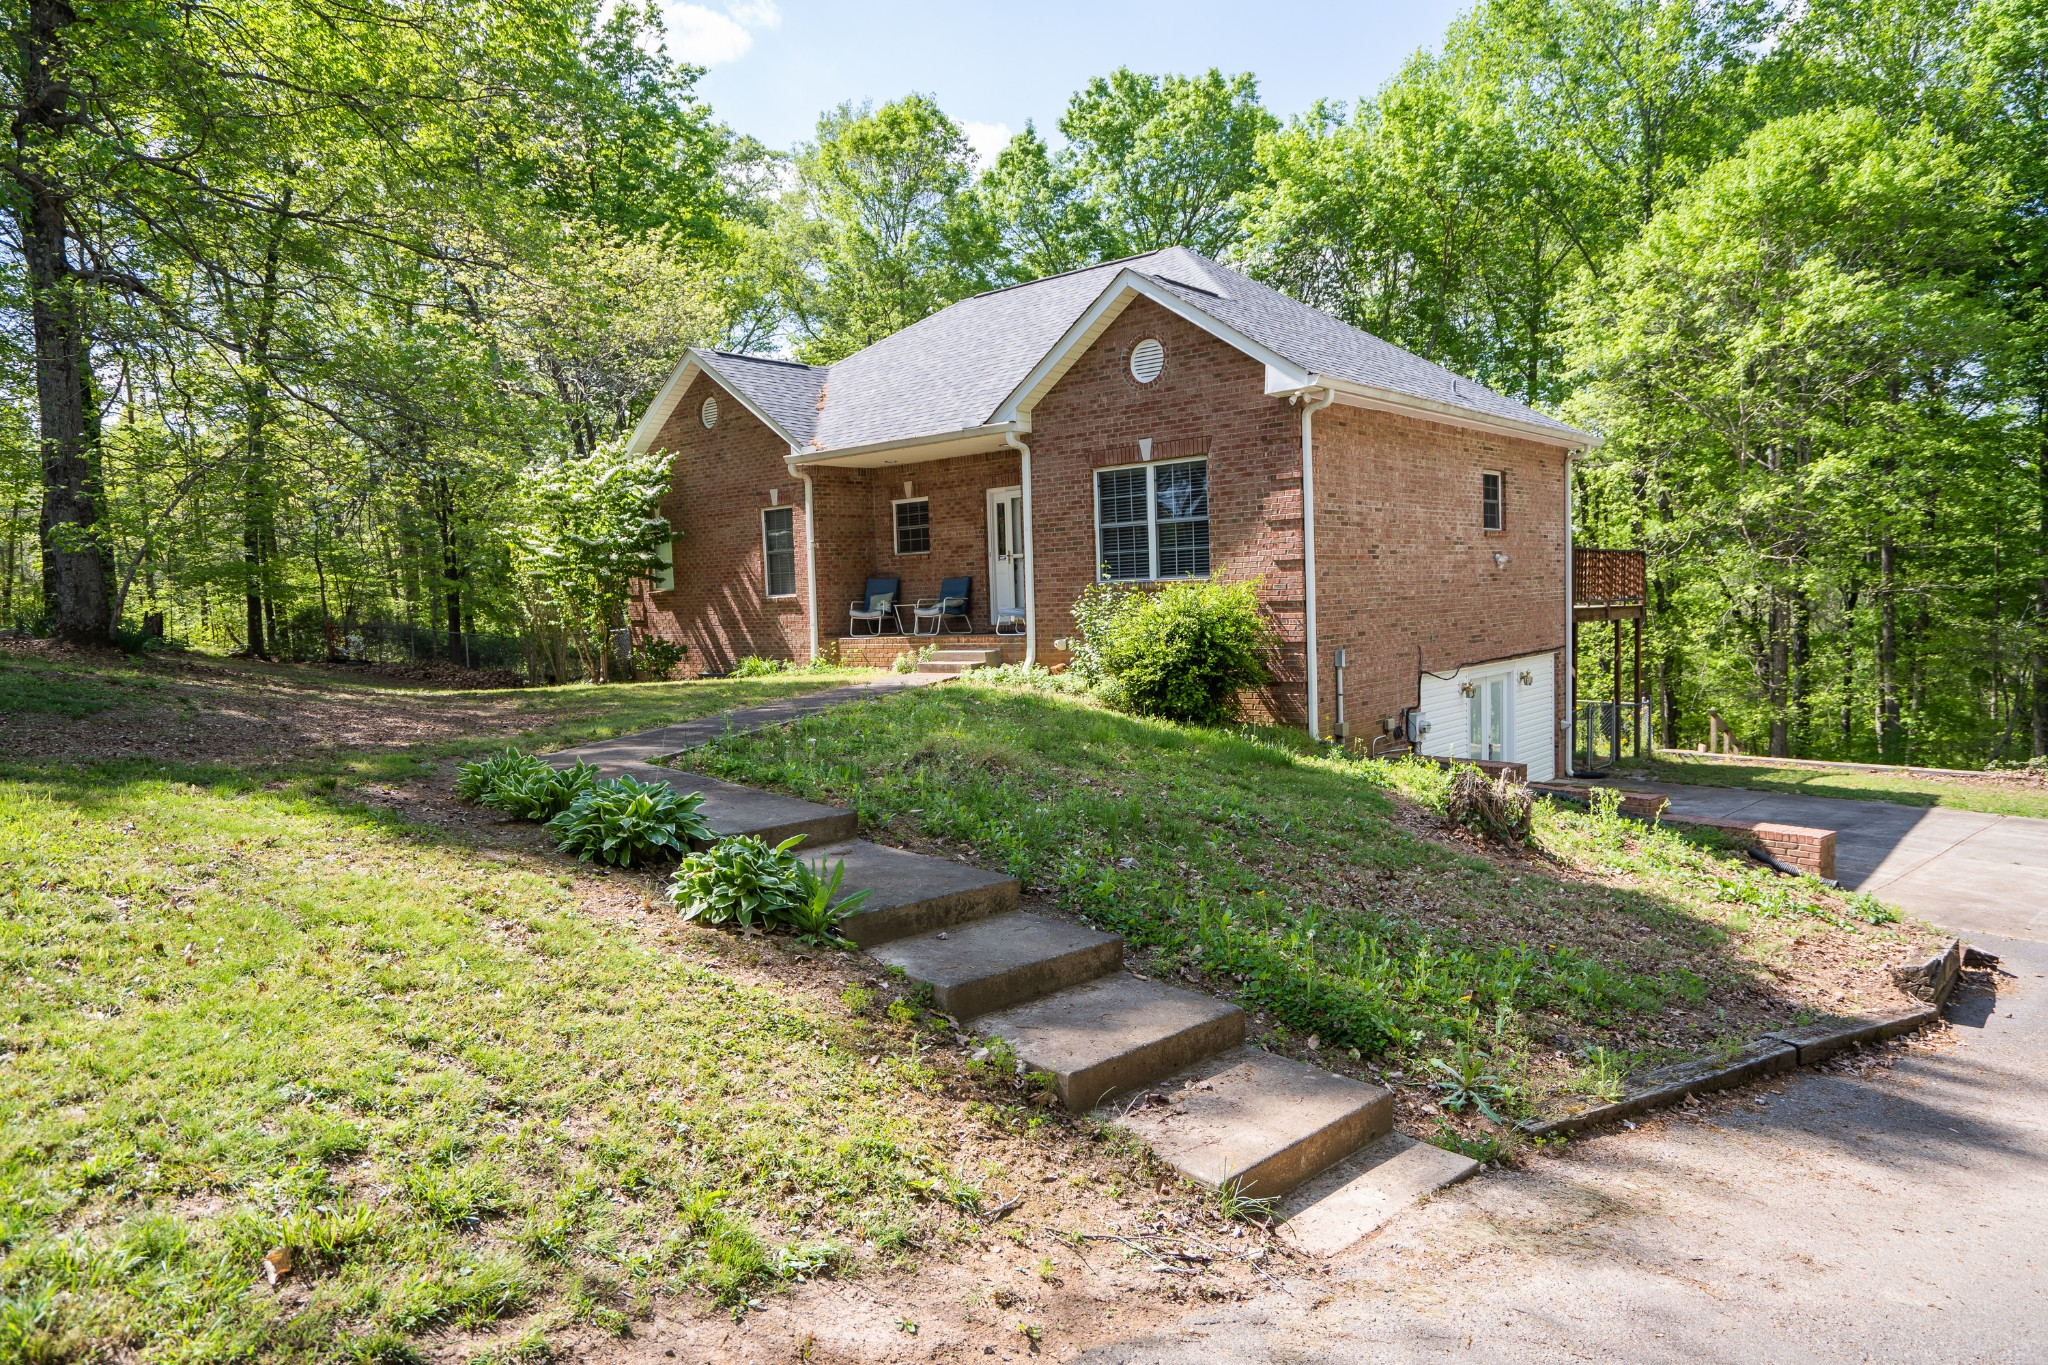 3077 Old Clarksville Sprgfld Rd Property Photo - Adams, TN real estate listing